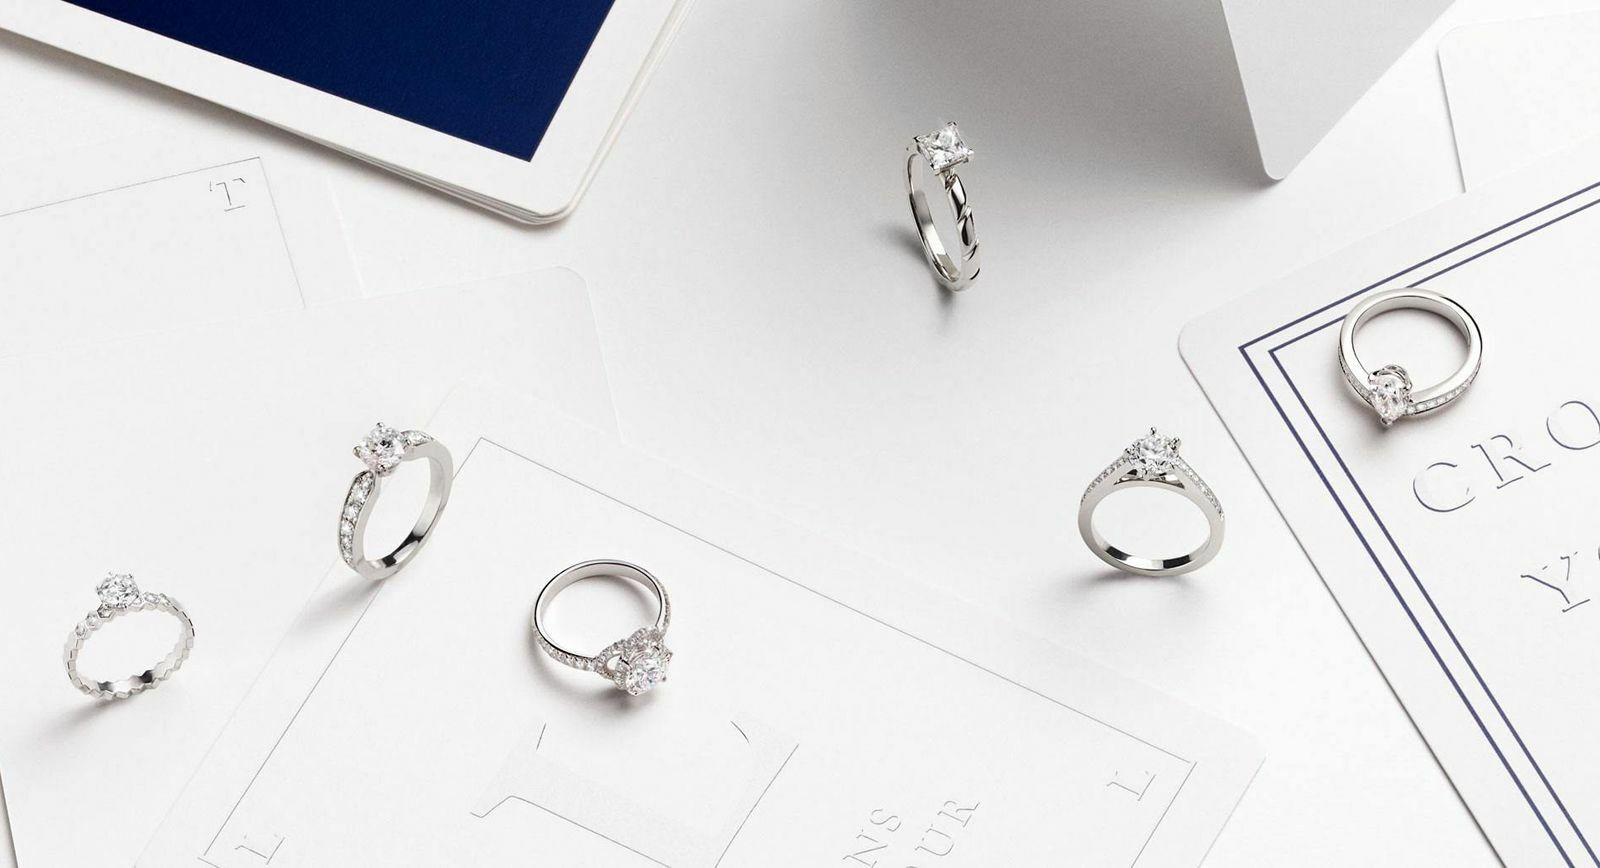 Engagement rings: Bridal jewellery with iconic brand design motifs